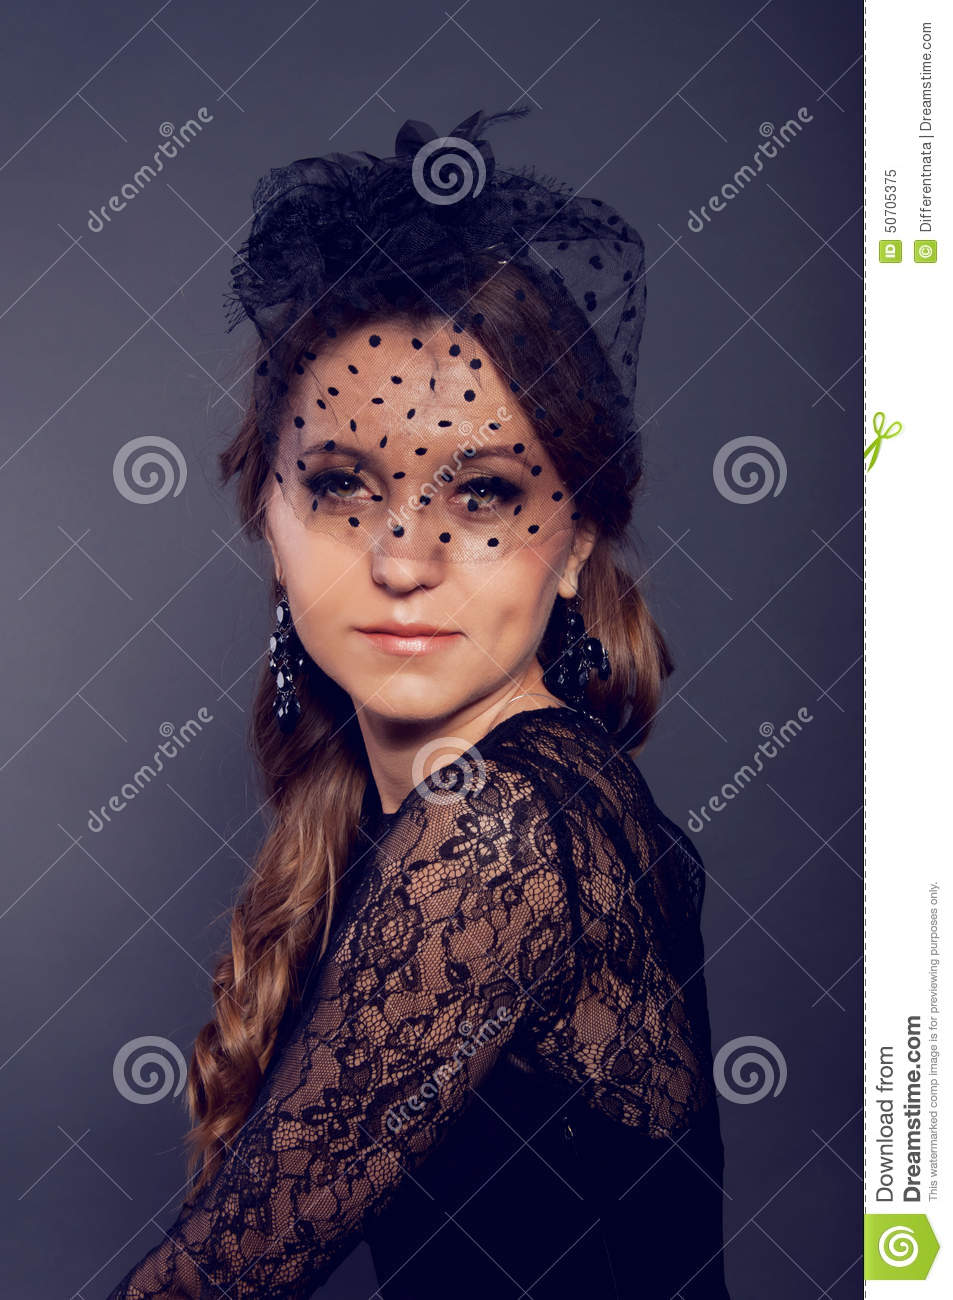 132831856ae2c Elegant young woman in black lace dress and black veil hat with long curly  hair. Retro style.